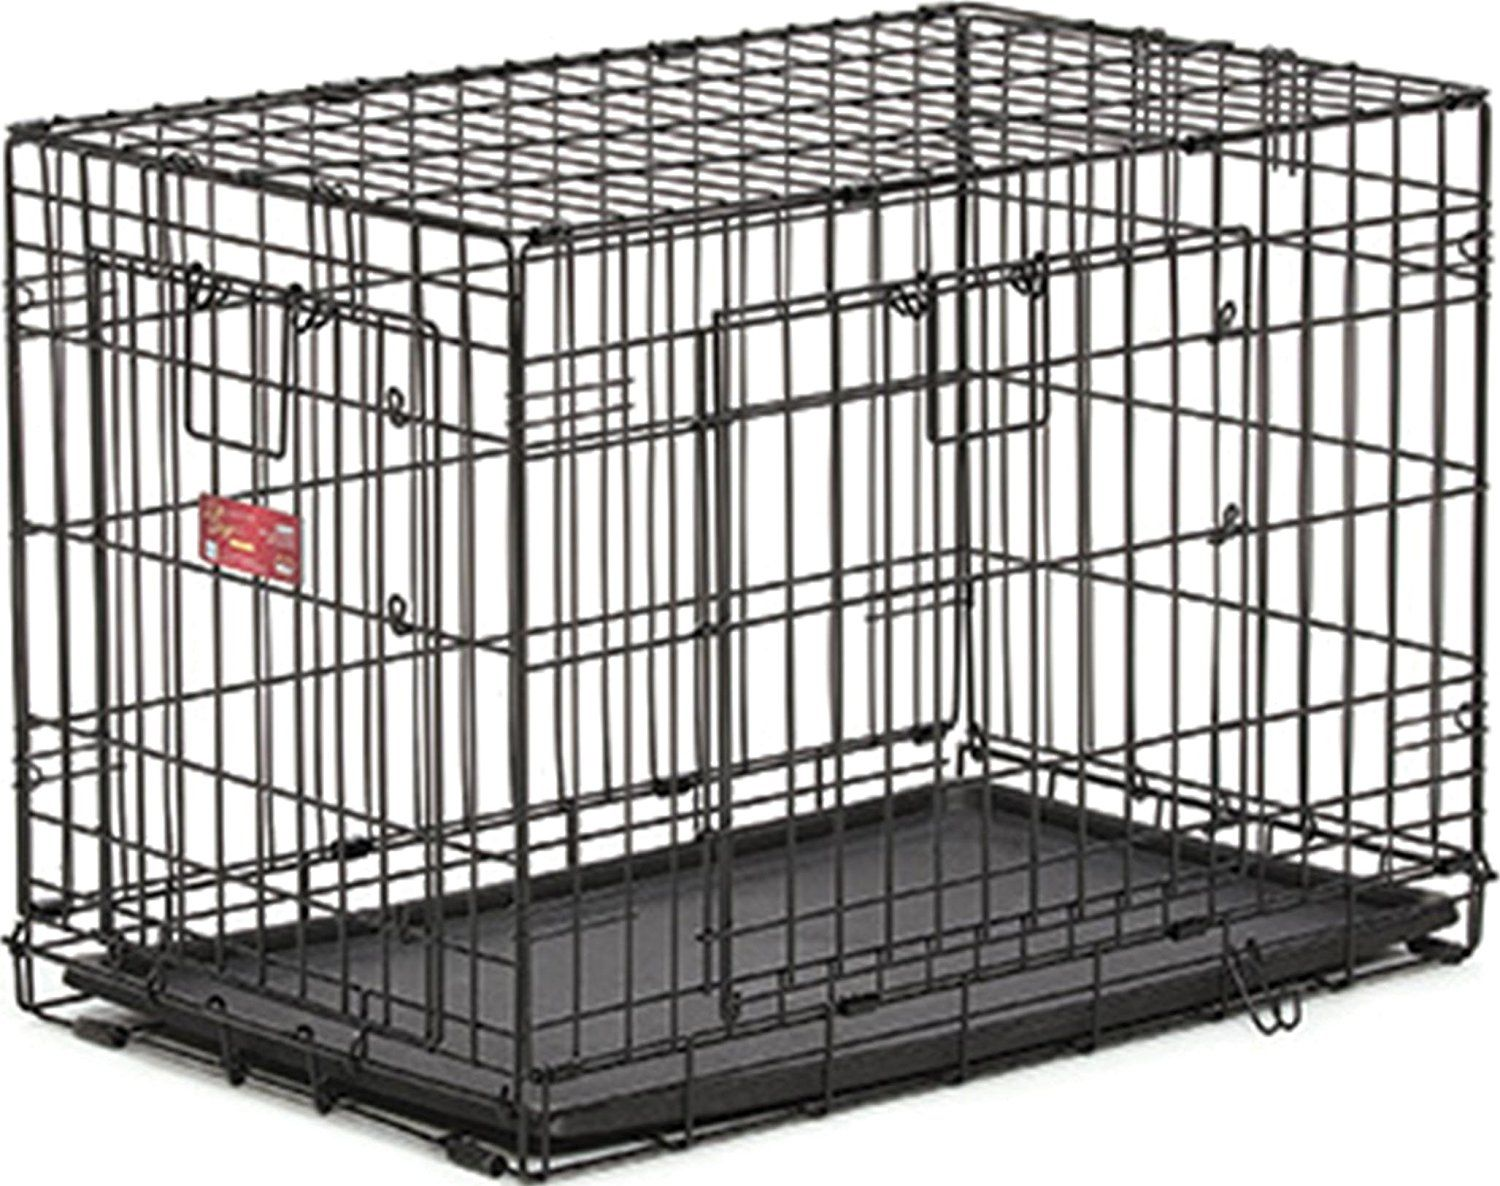 Midwest Homes For Pets Life Stages Ace Dog Crate See This Awesome Image This Is An Amazon Affiliate Link I May Earn Commission From It Dog Travel Crate